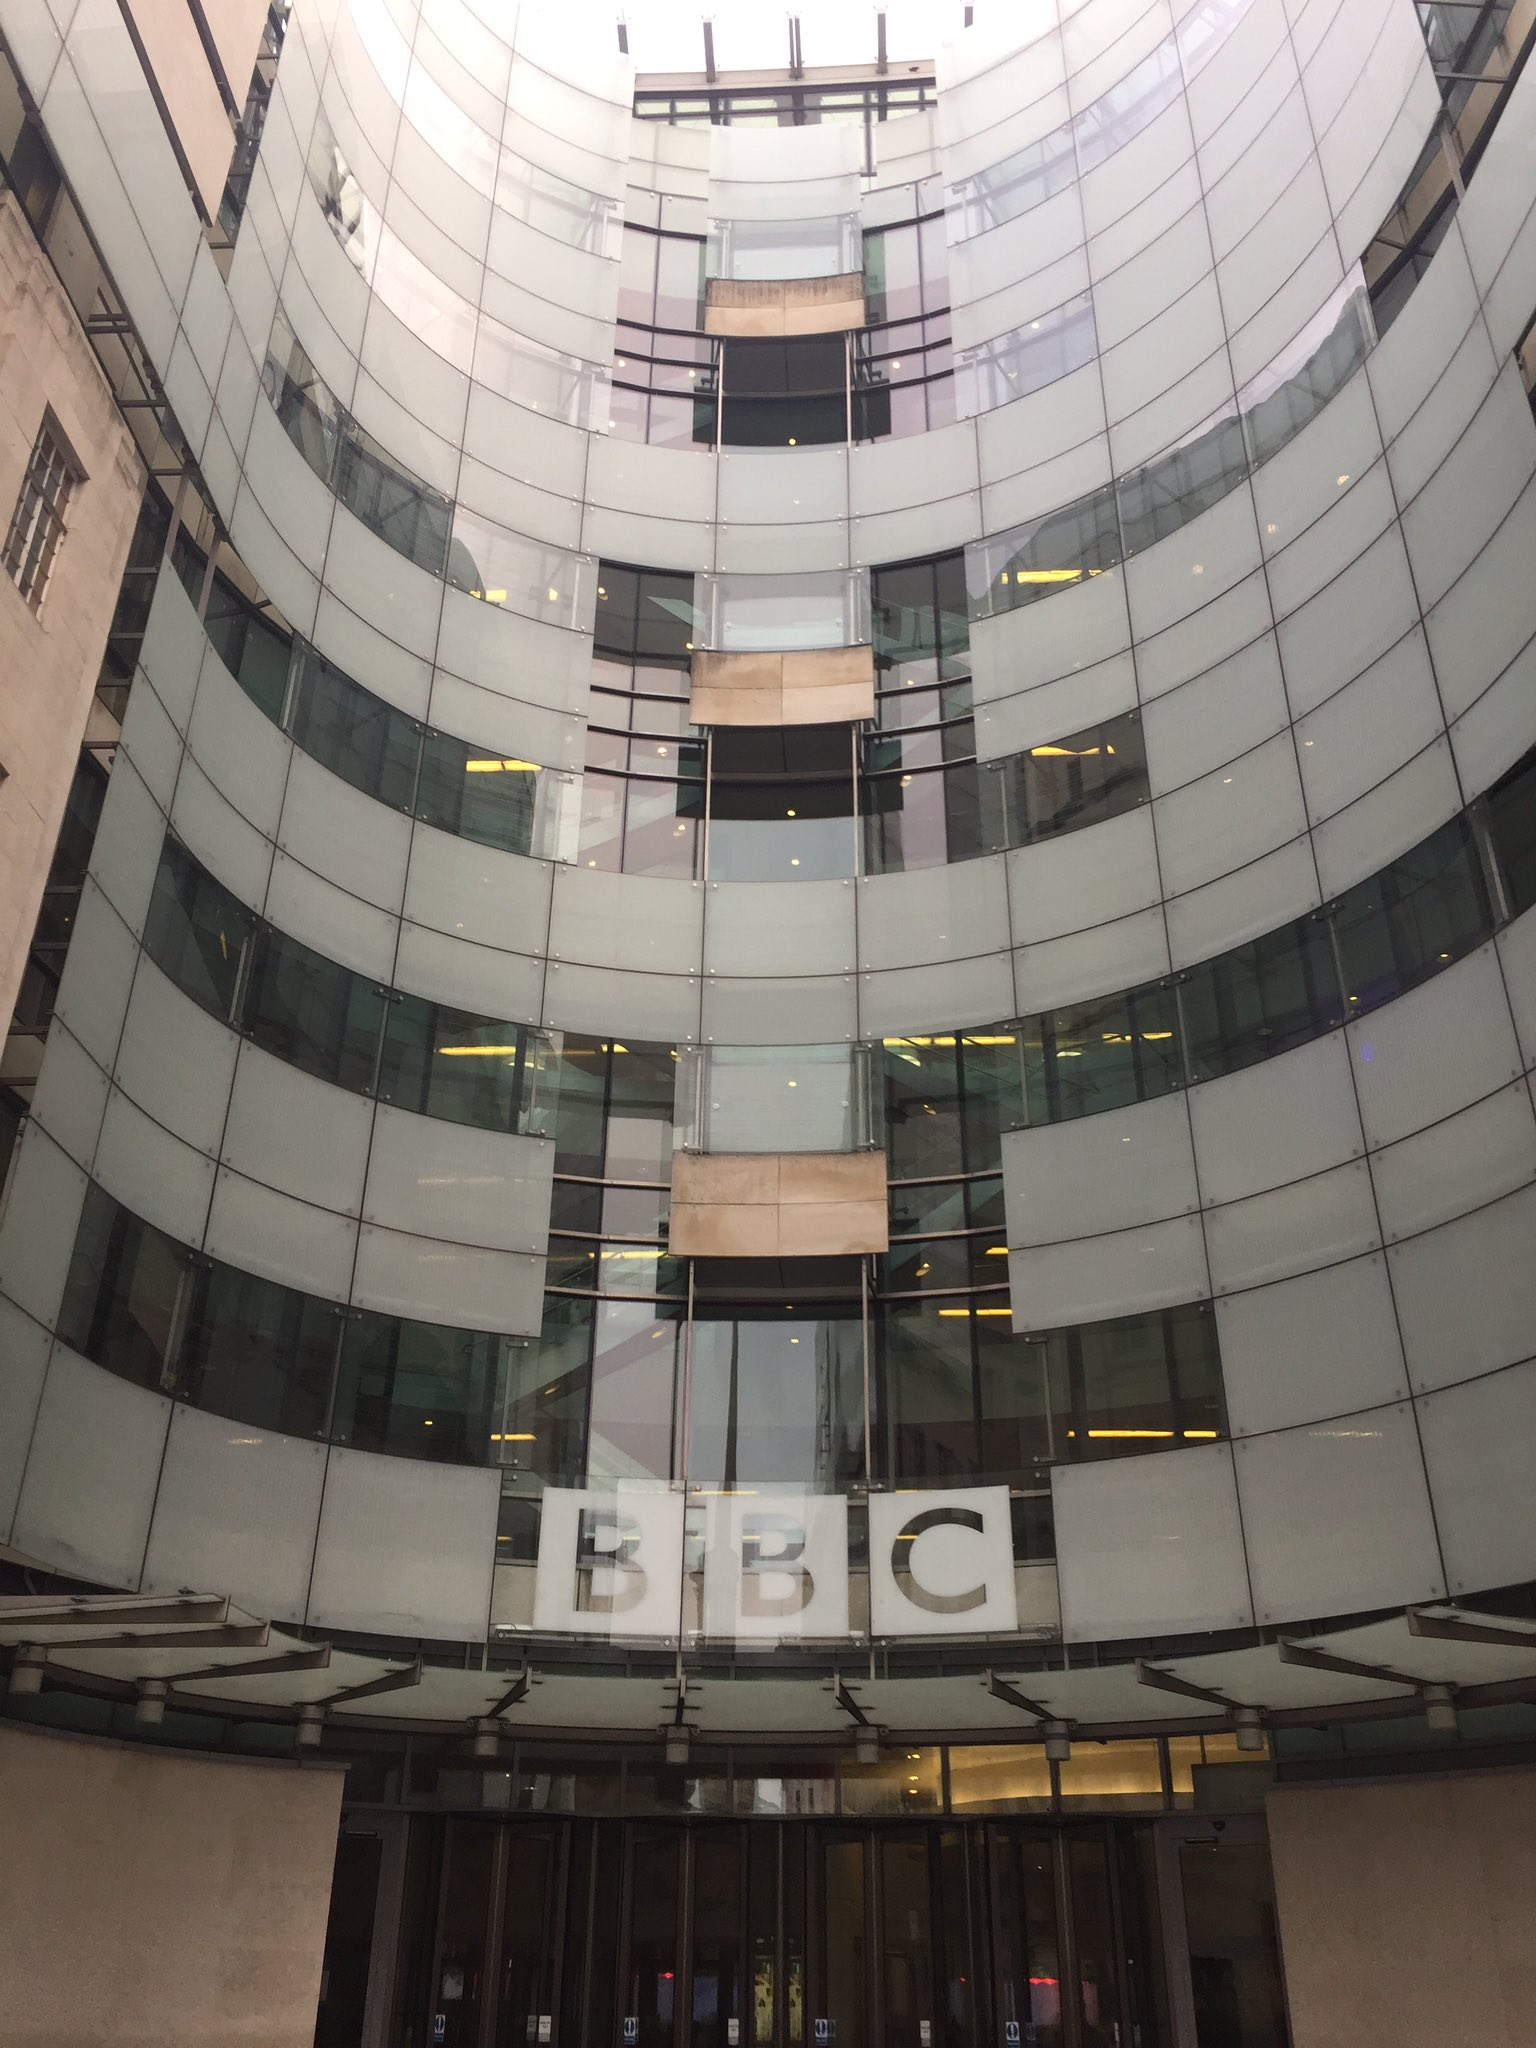 Just arriving at the @bbcnews to do interviews on today's publication Of CQC #StateofMH report https://t.co/HB4Uoqh3Rn https://t.co/Cik248oUuL